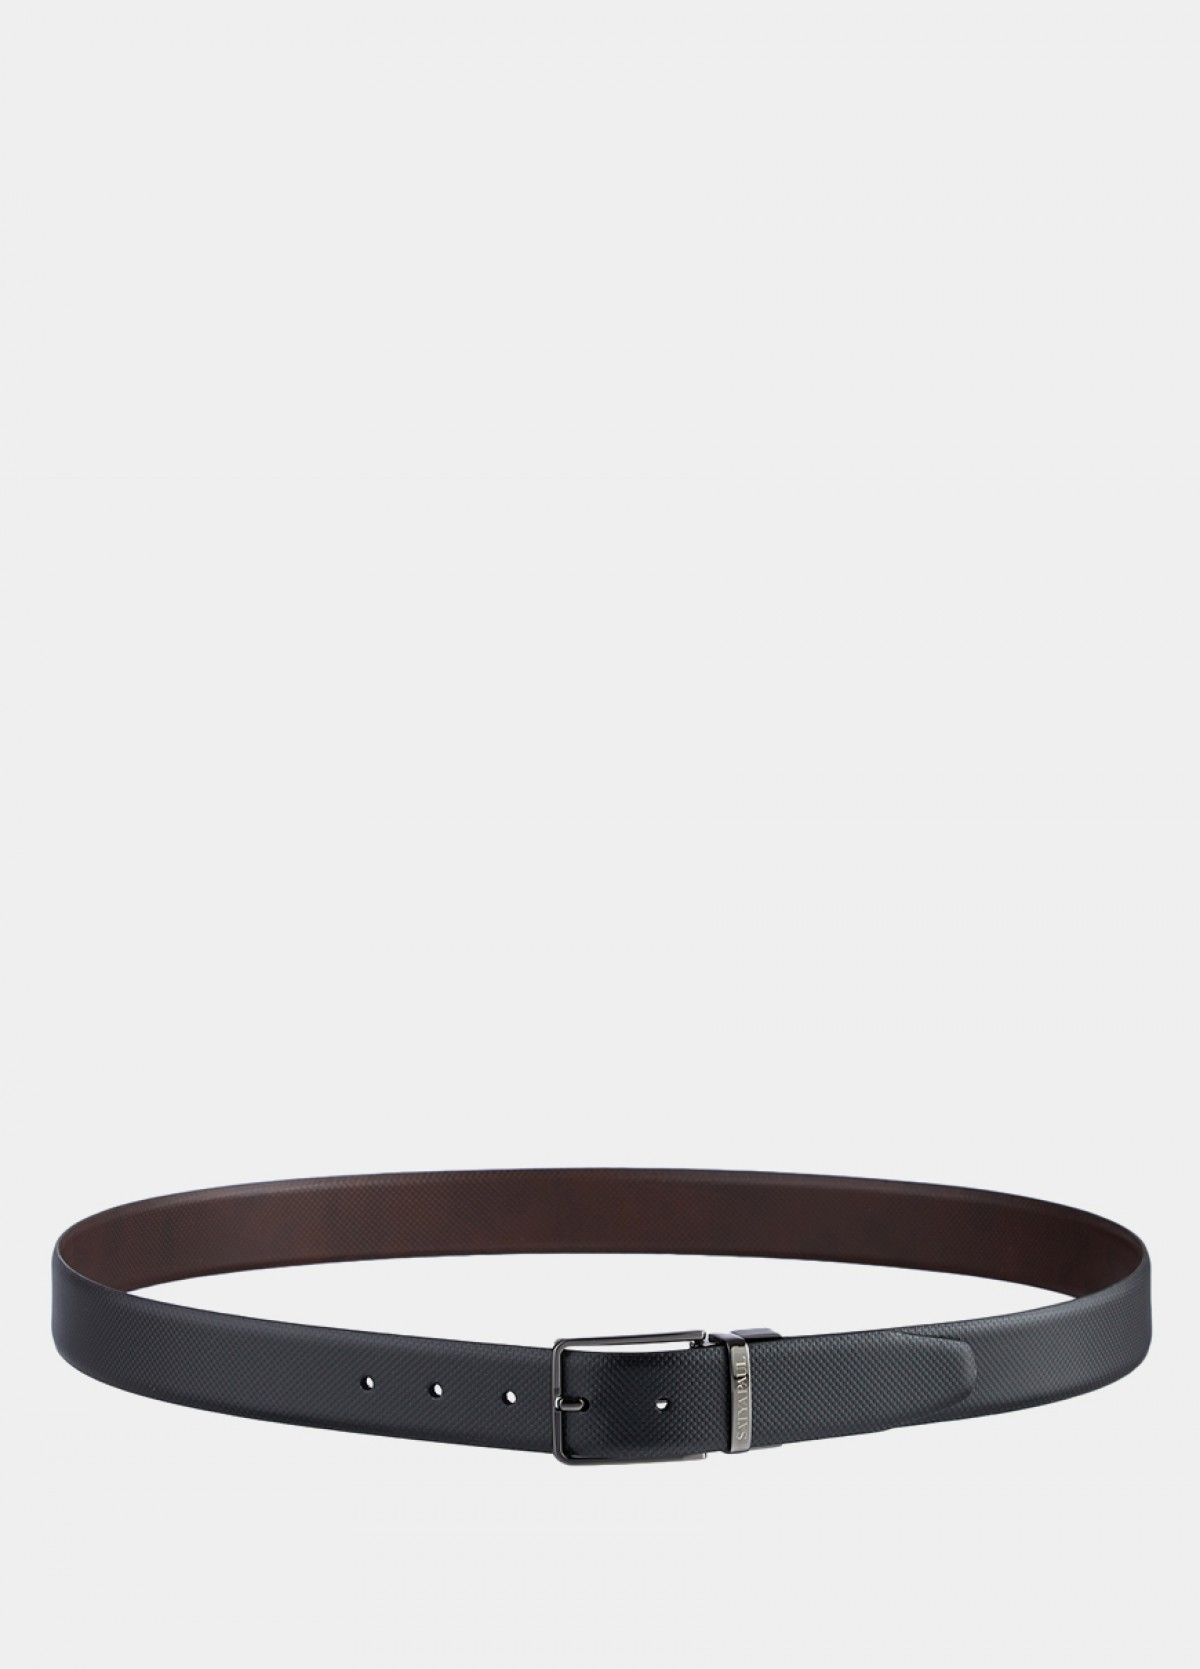 The Reversible Black And Brown Leather Belt